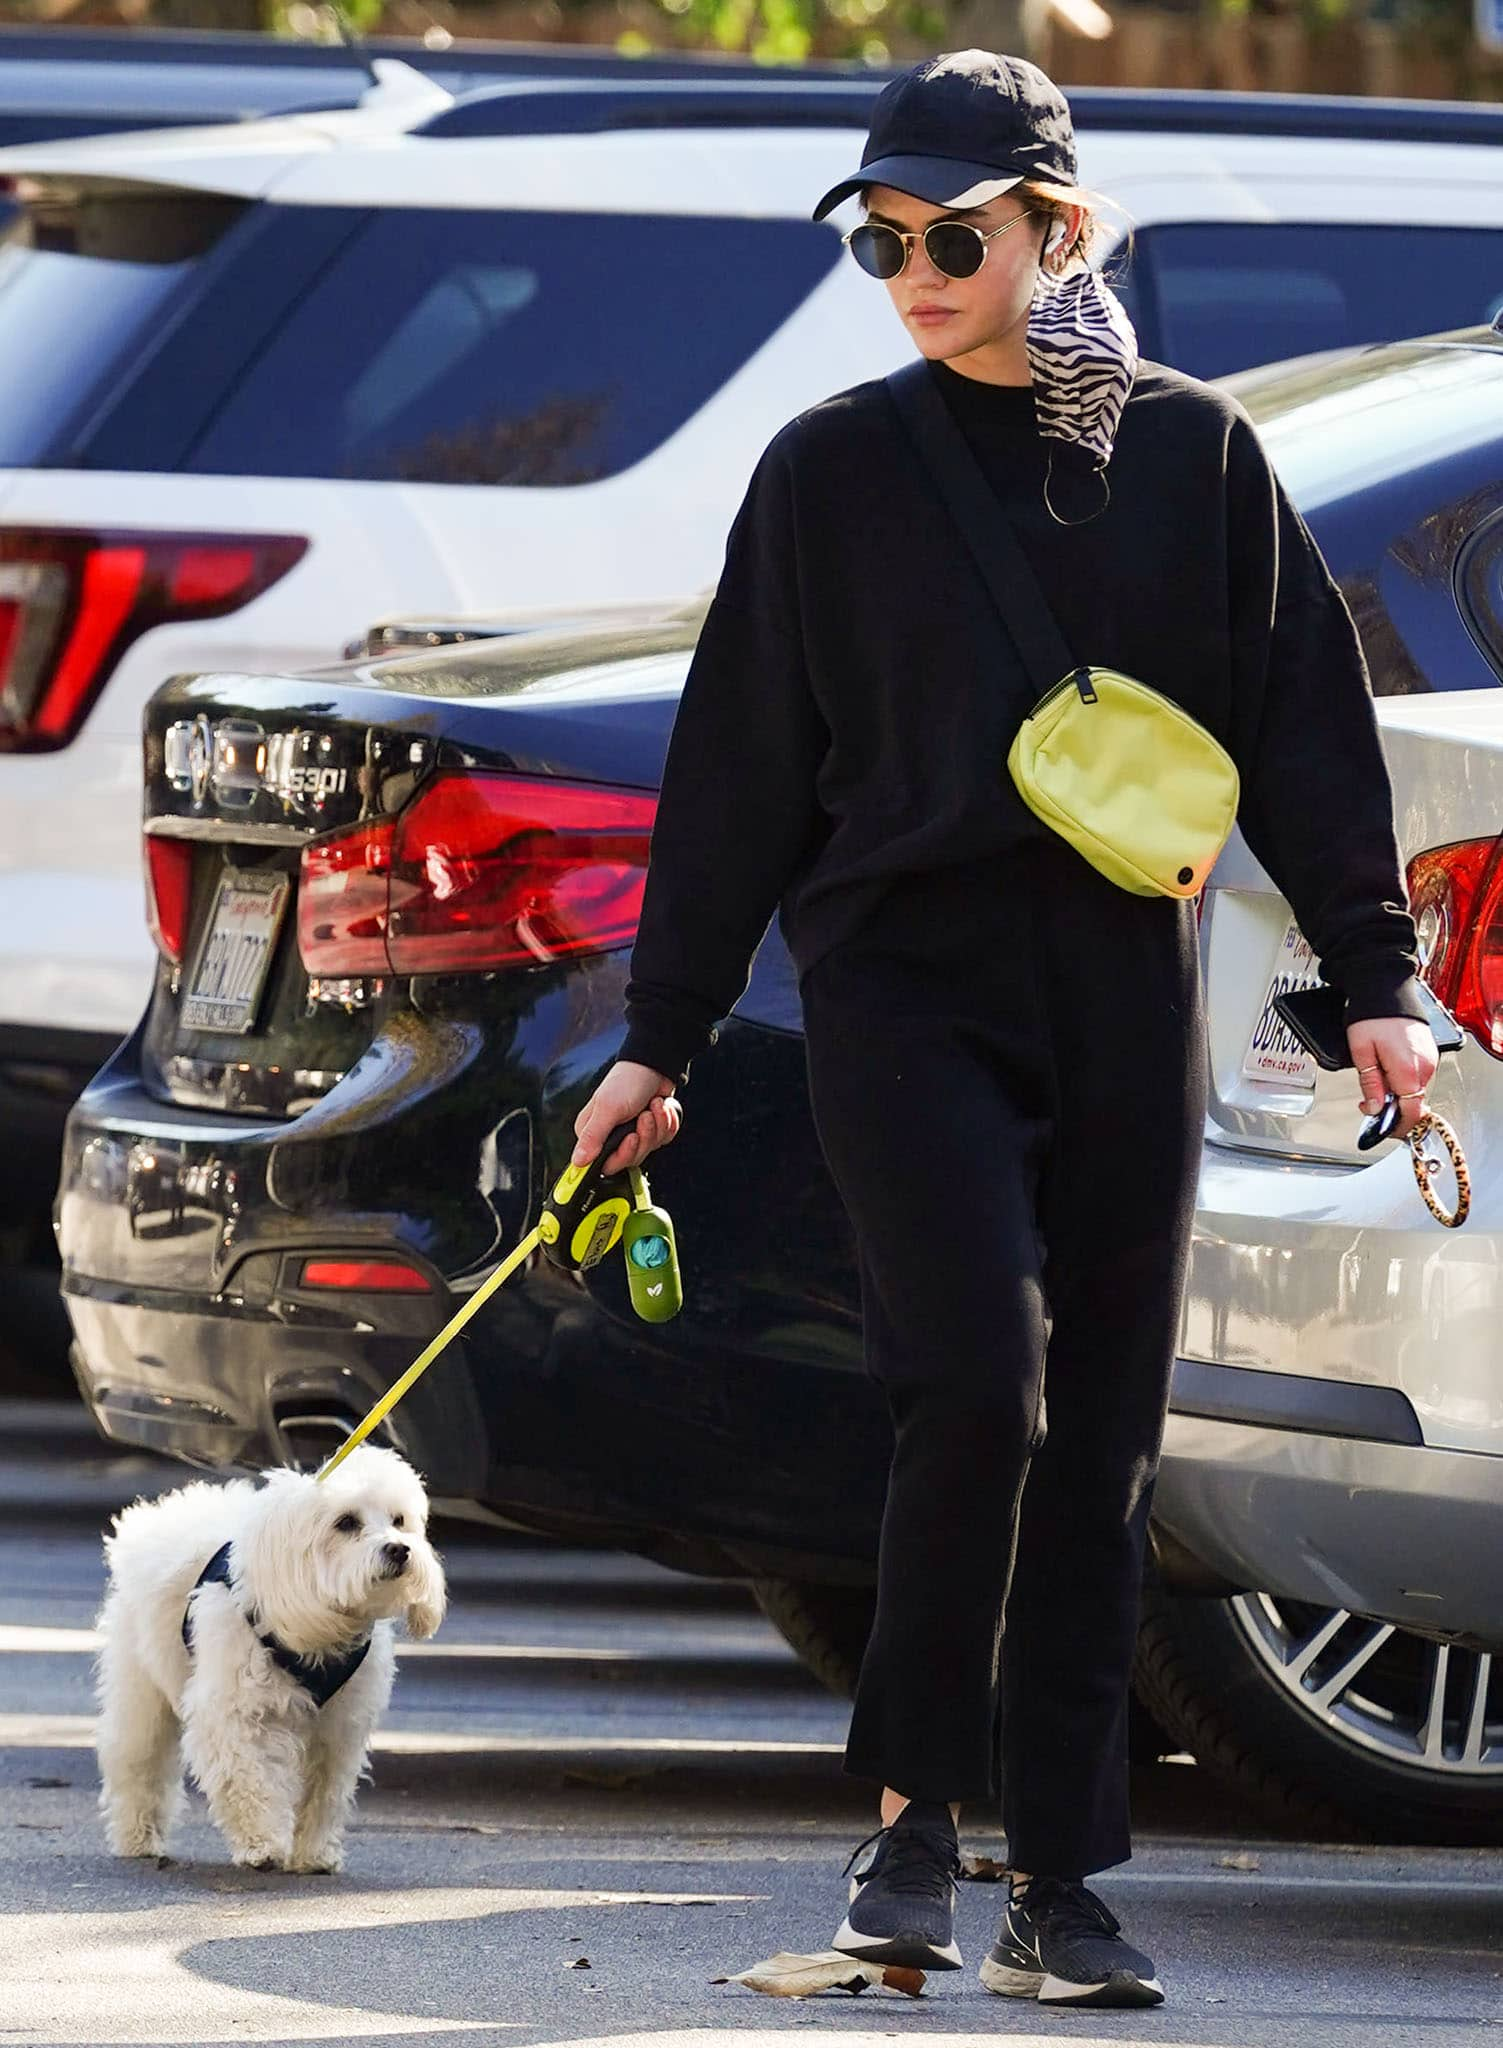 Lucy Hale takes her Maltipoo Elvis out for a walk in Tkees sweater and pants on February 4, 2021